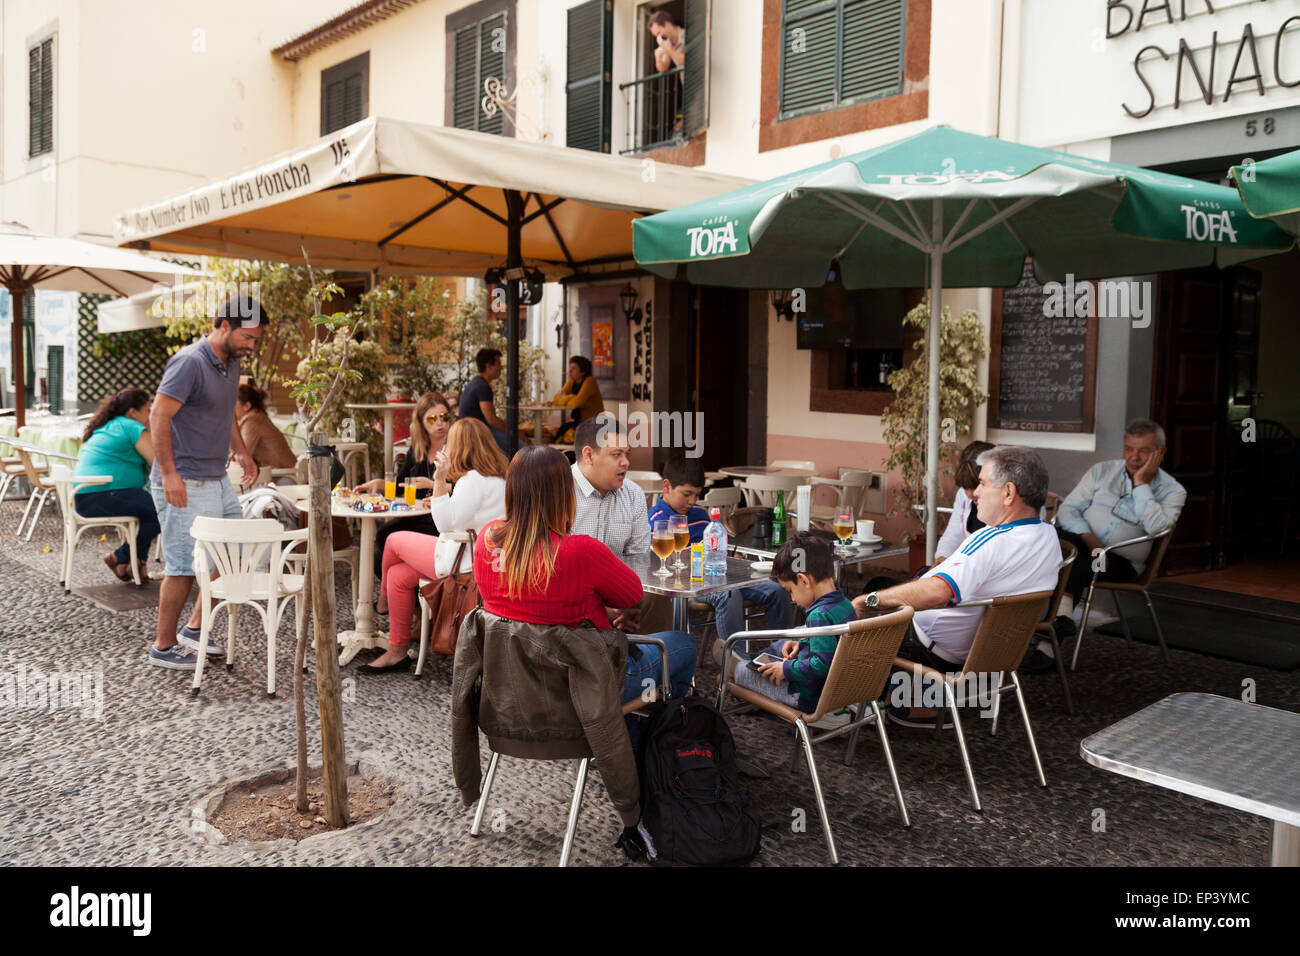 People drinking in a cafe, Funchal old town ( Zona Velha ), Madeira, Europe - Stock Image